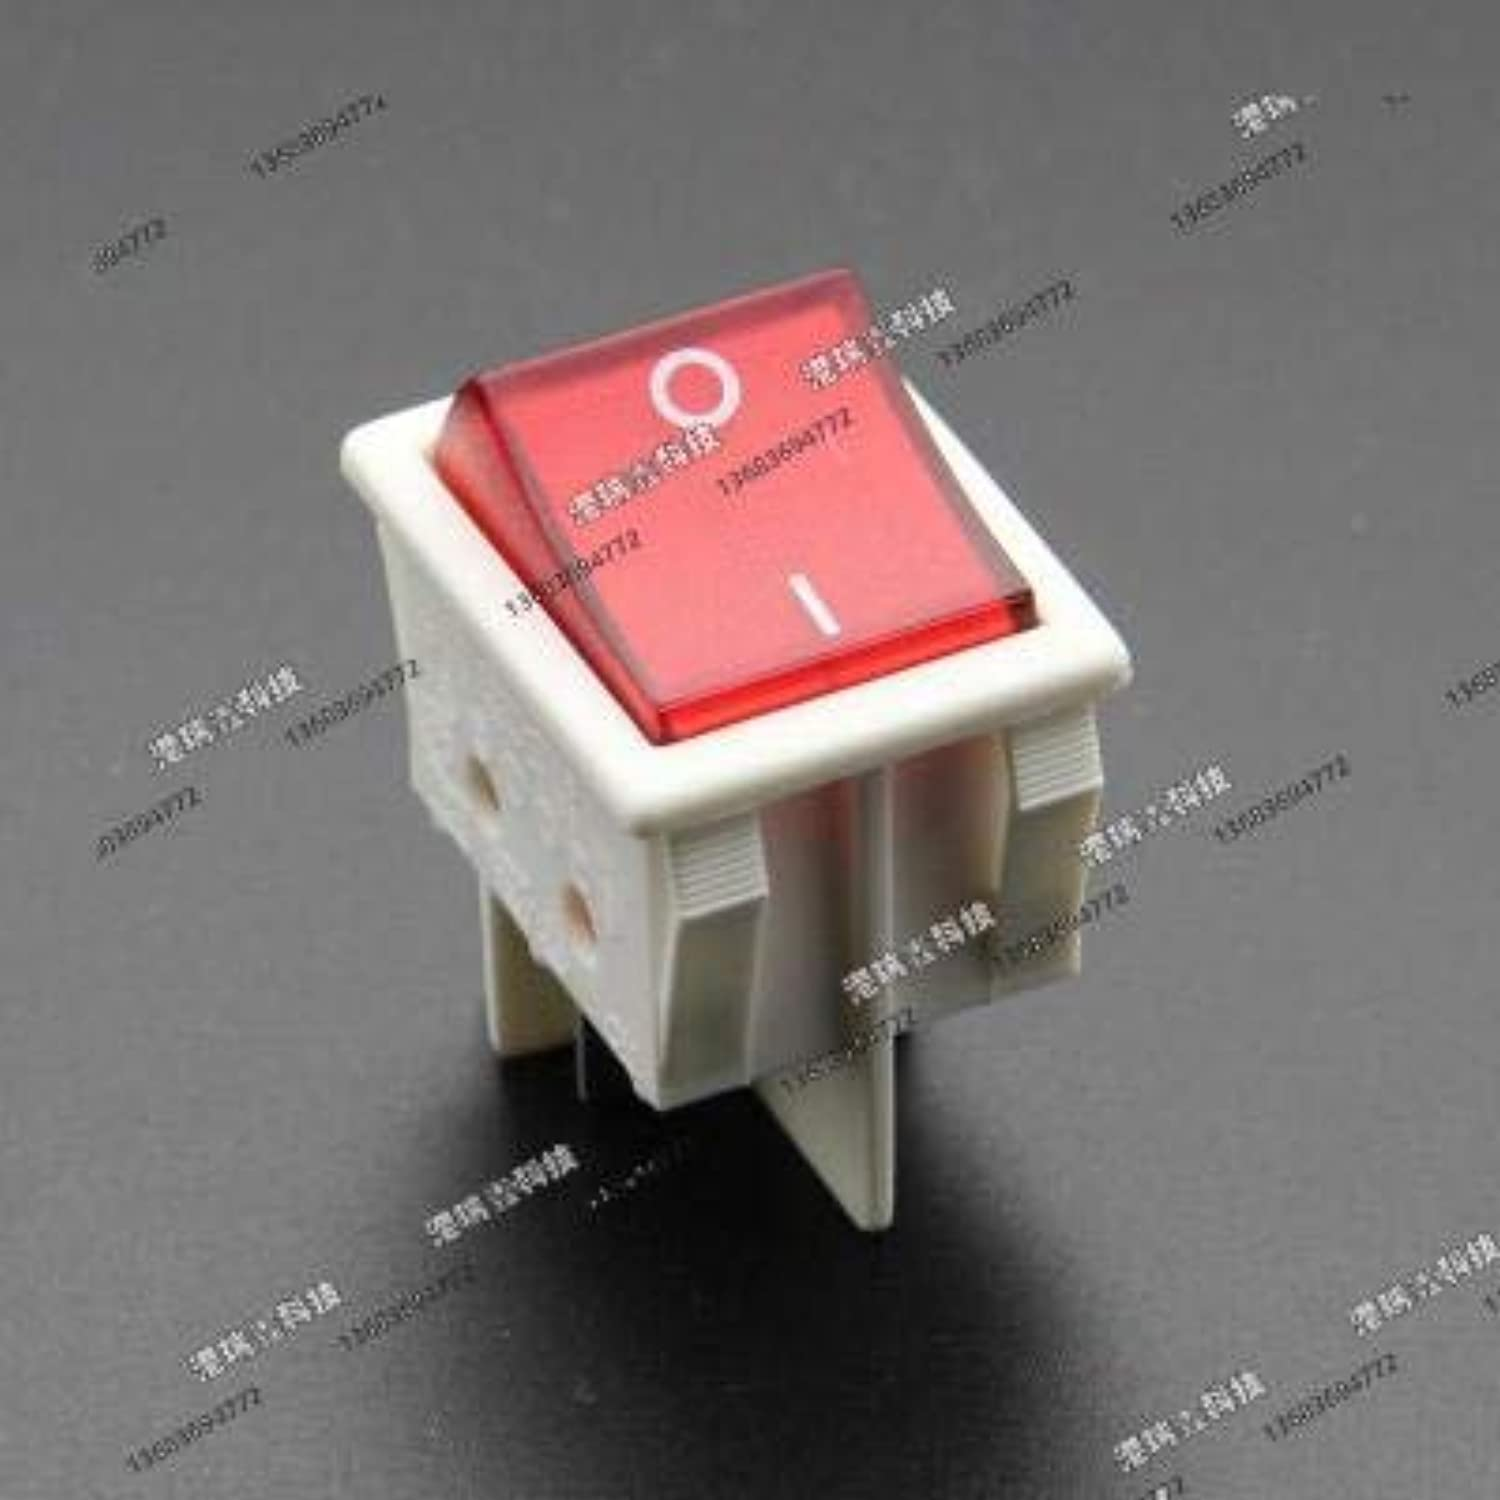 [SA]Canal Power Rocker Switch Light Yellow Green RED Black Border Exchange Large R210-C5L Rocker Switch Toggle R210 4P-50pcs(color  White-RED, Voltage  220V)